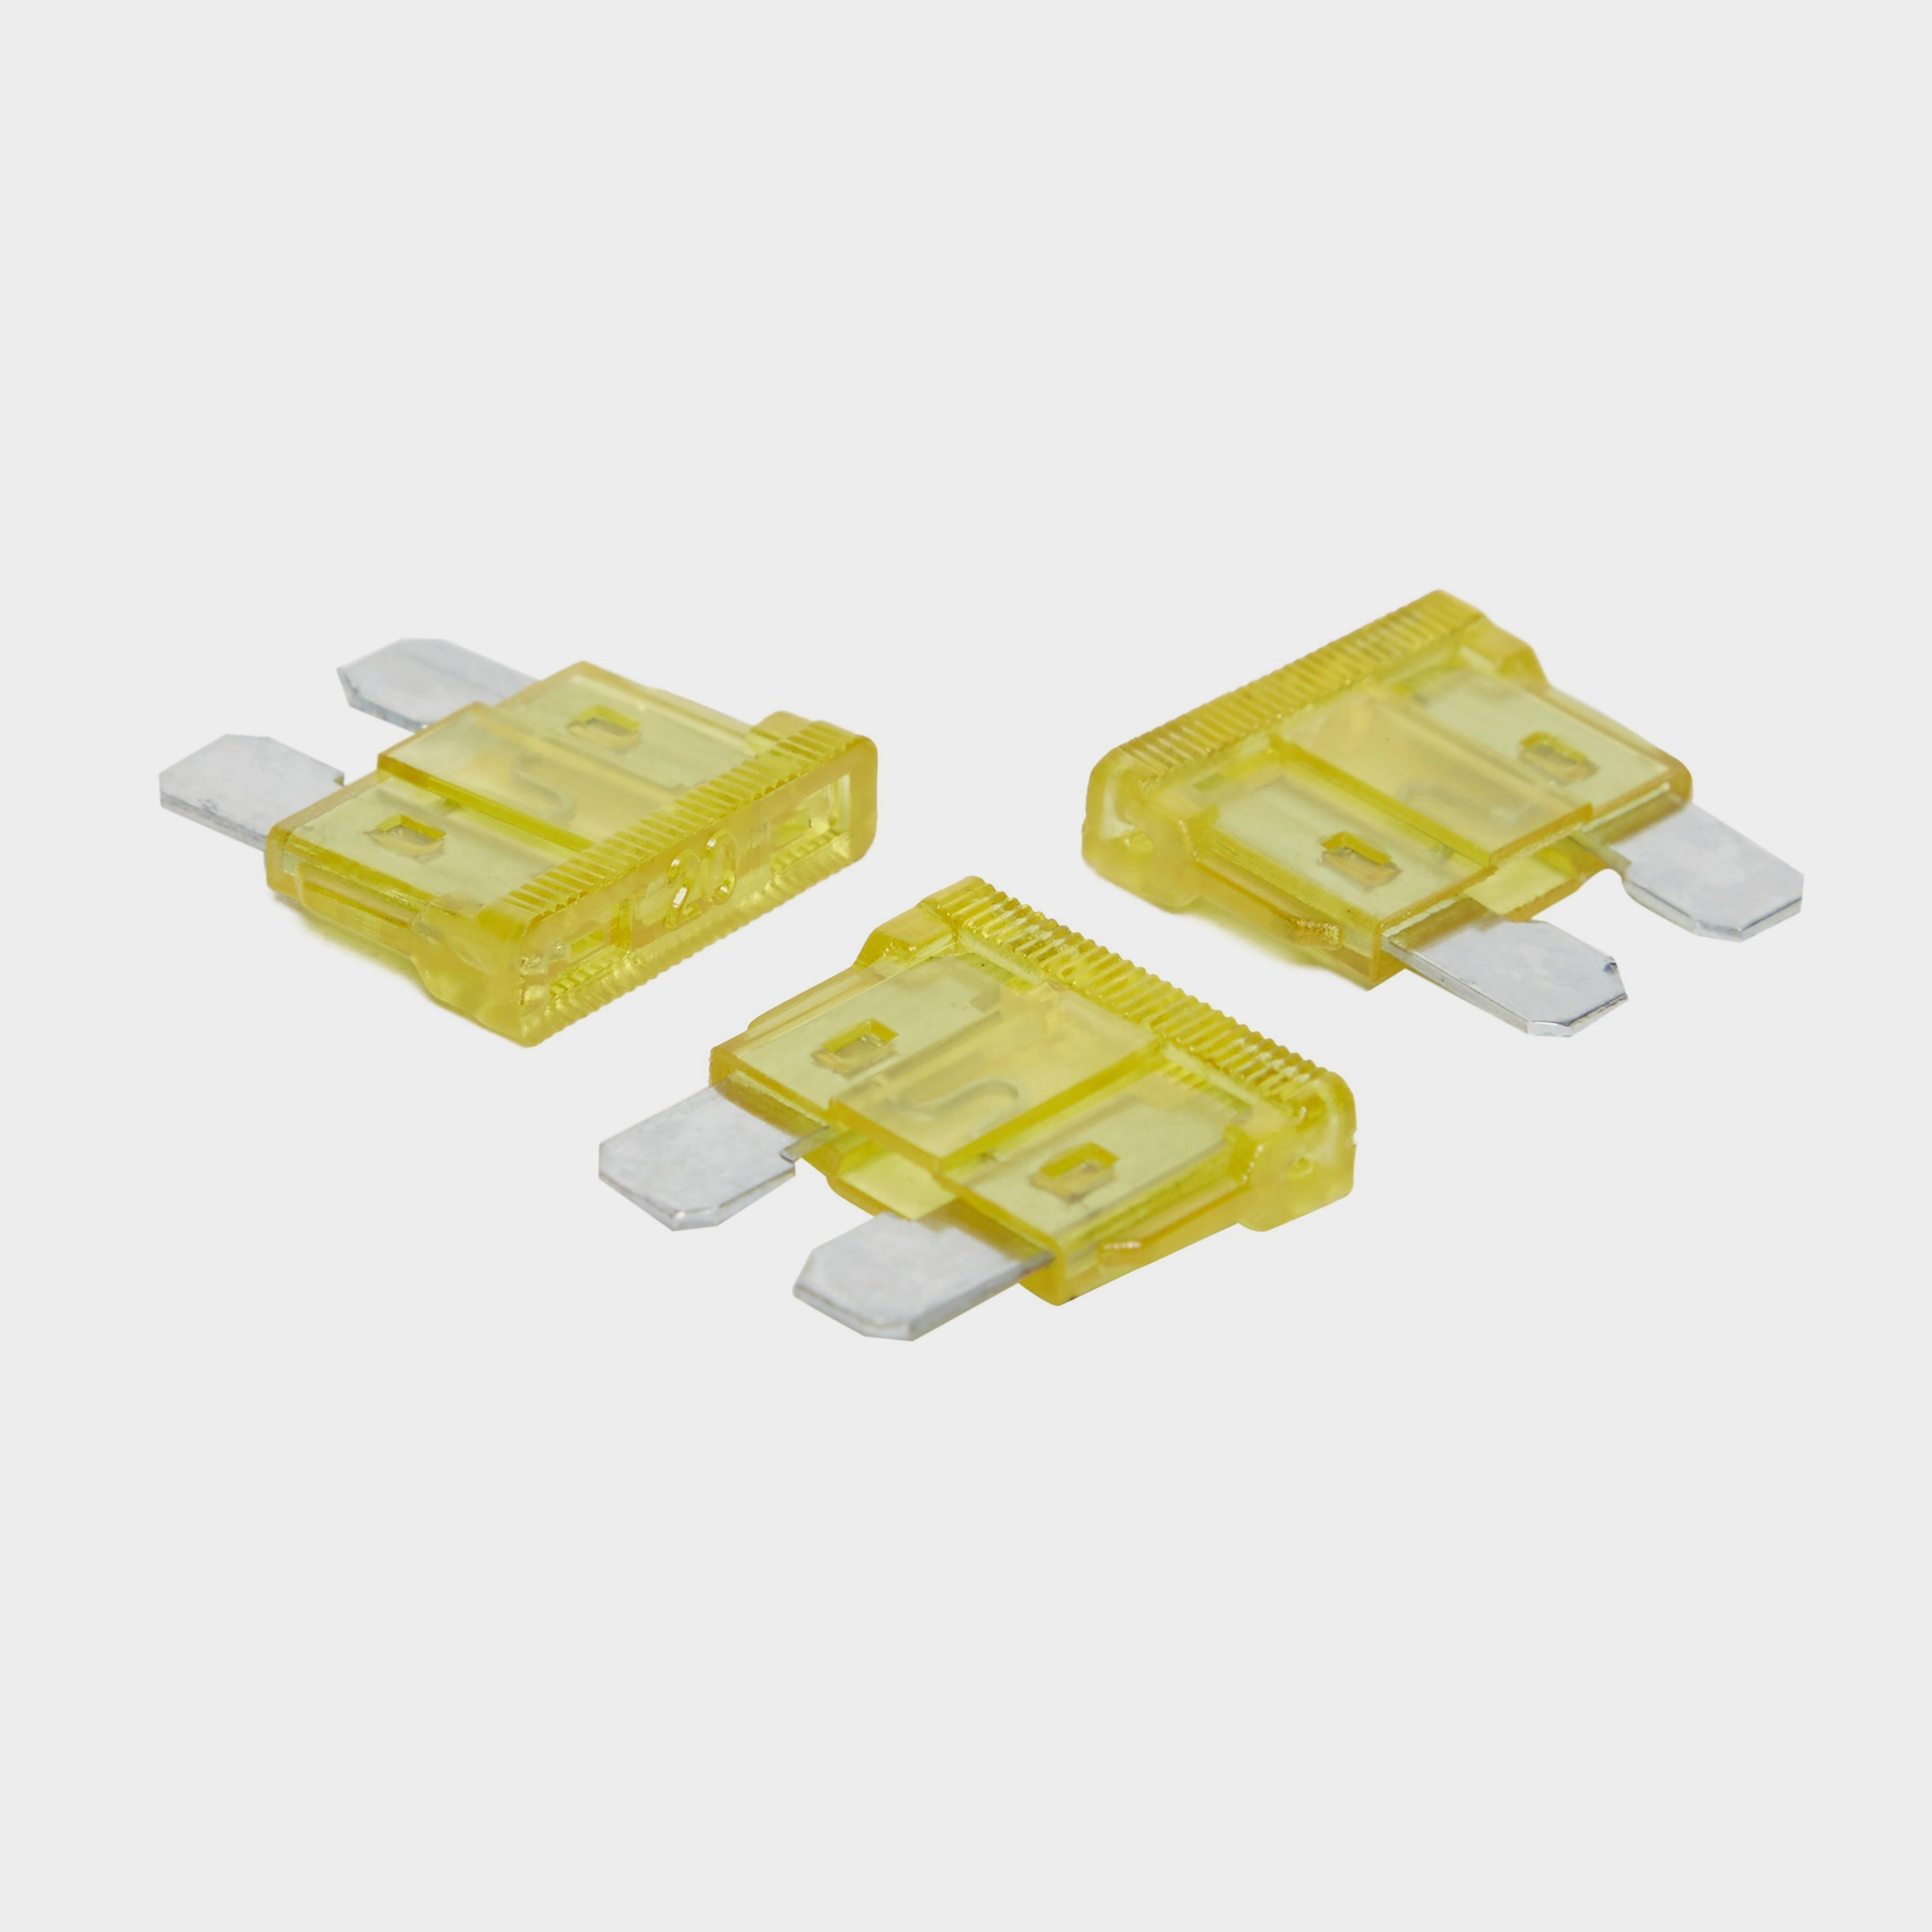 W4 20 Amp Blade Fuses